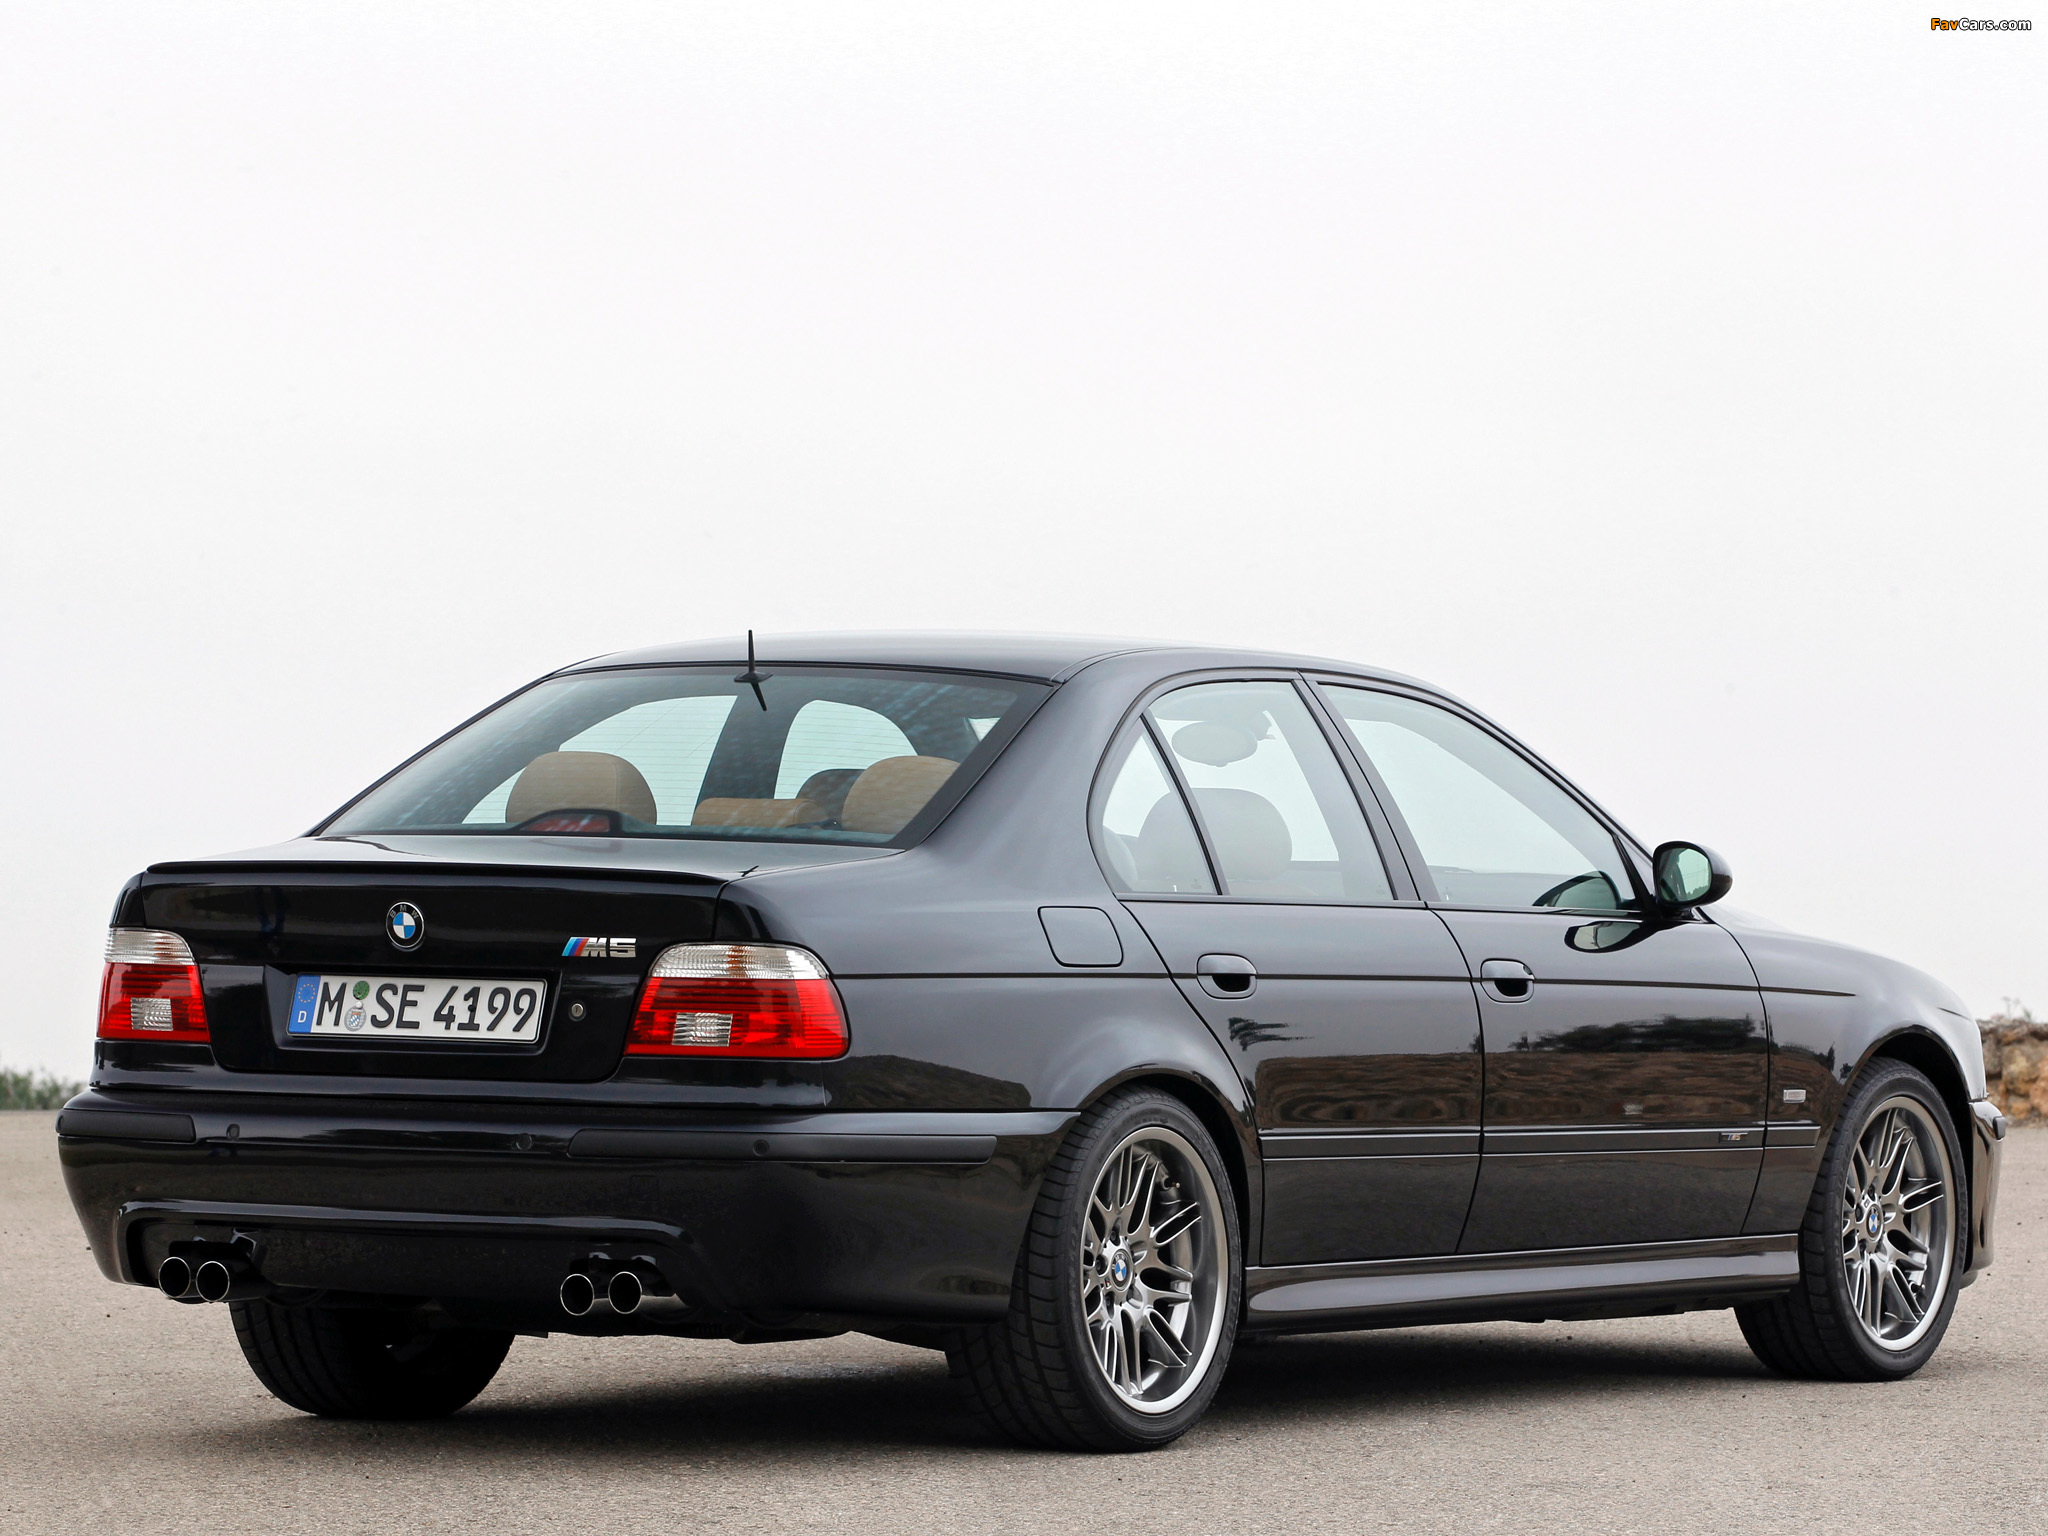 Bmw M5 E39 19982003 Wallpapers